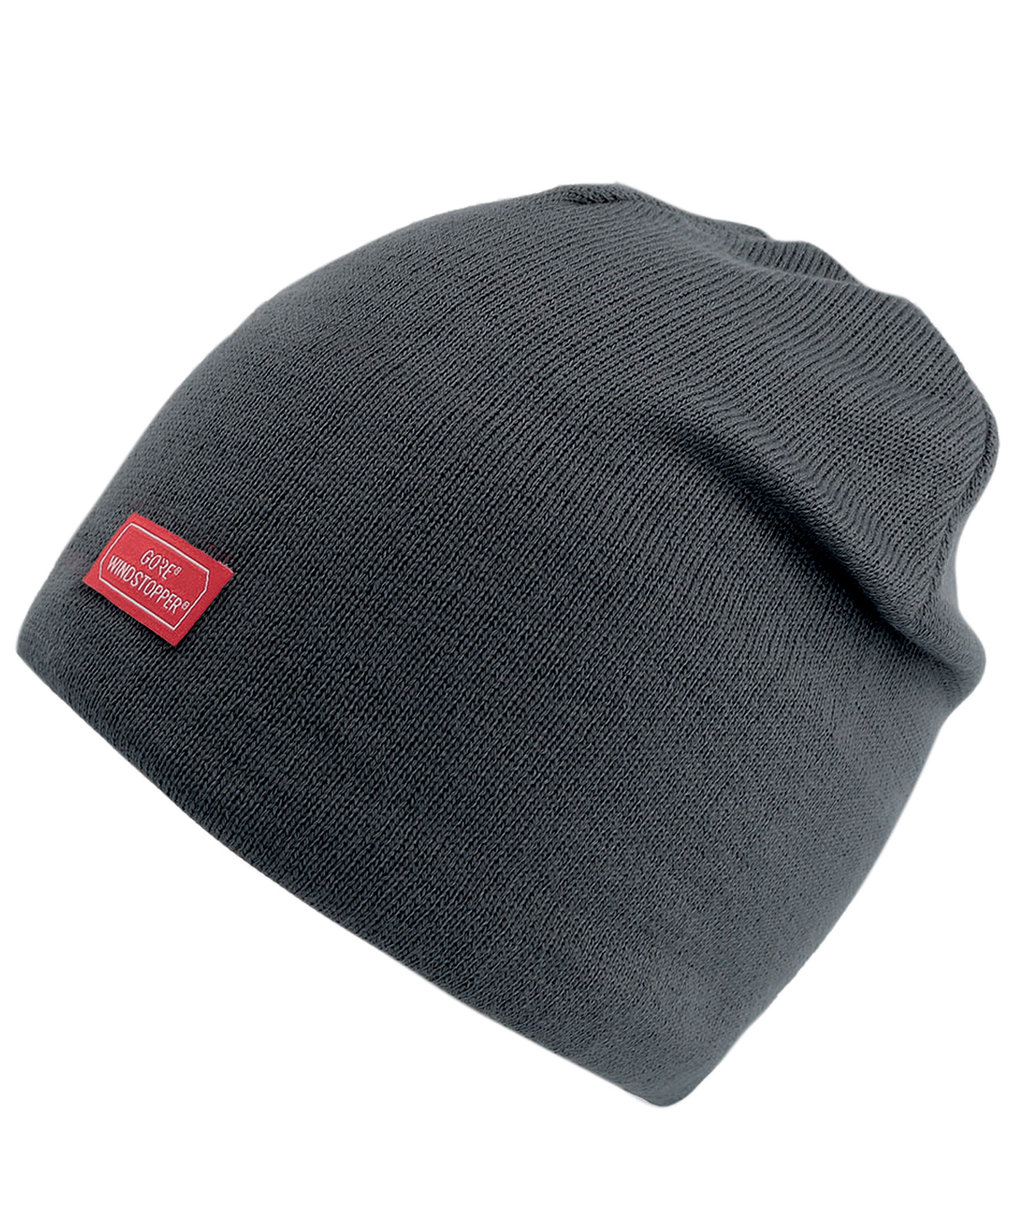 Atlantis Chill Windstopper beanie, Grey